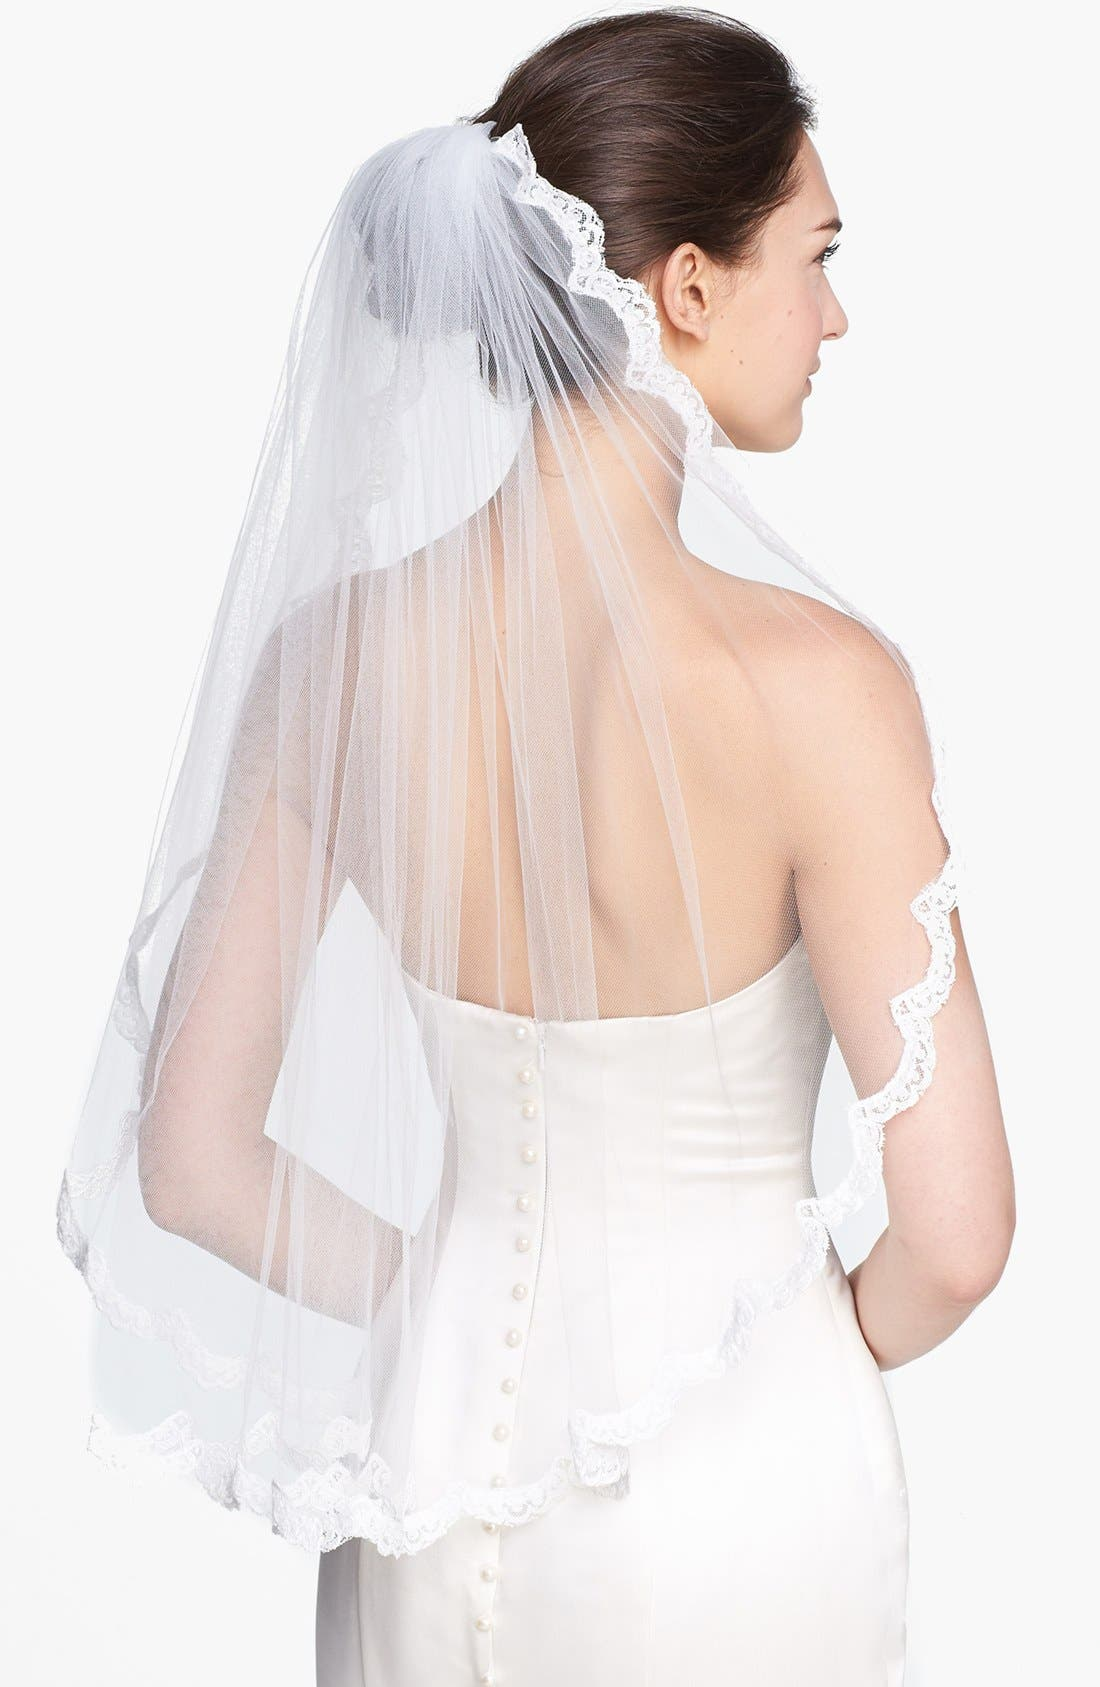 'Lola' Lace Border Veil,                             Main thumbnail 1, color,                             DIAMOND WHITE